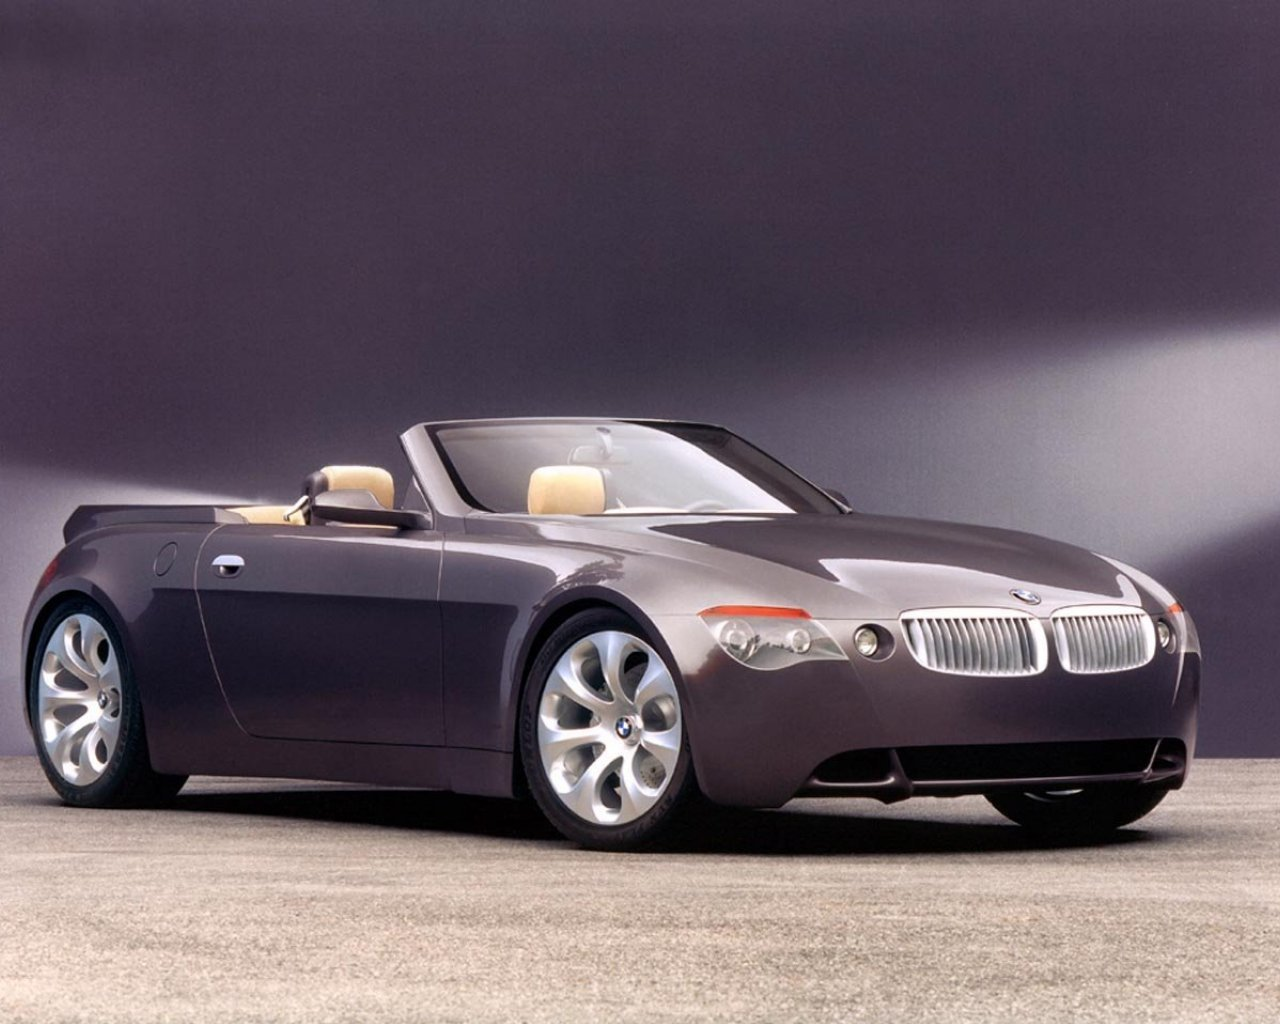 Latest Bmw Cars Hd Wallpapers Auto Car Free Download